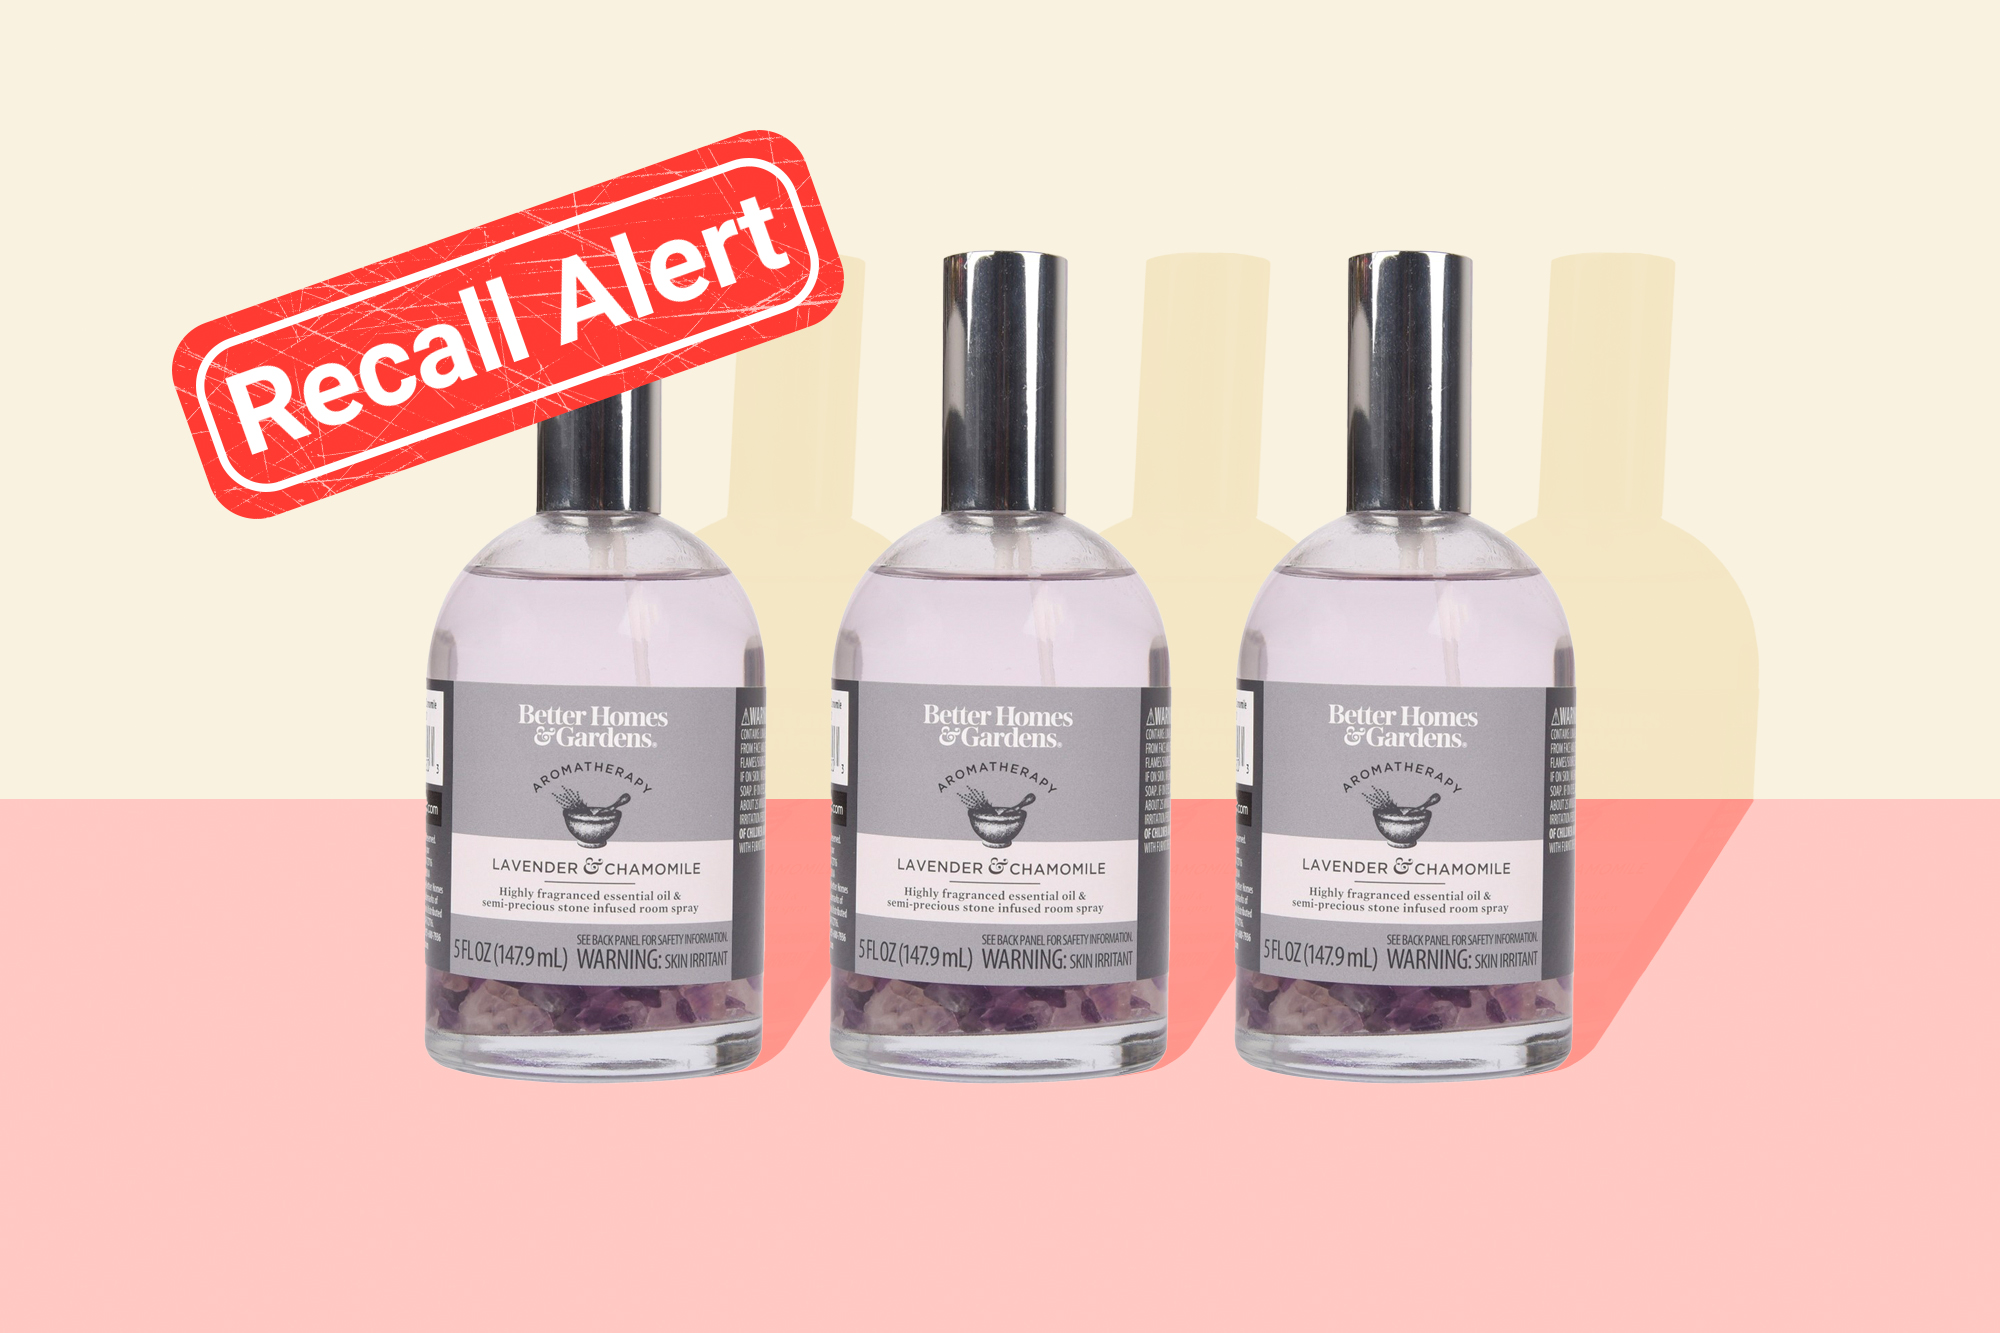 Better Homes & Gardens UPC 84140411420 Lavender and Chamomile on a designed background wih a recall button in the back